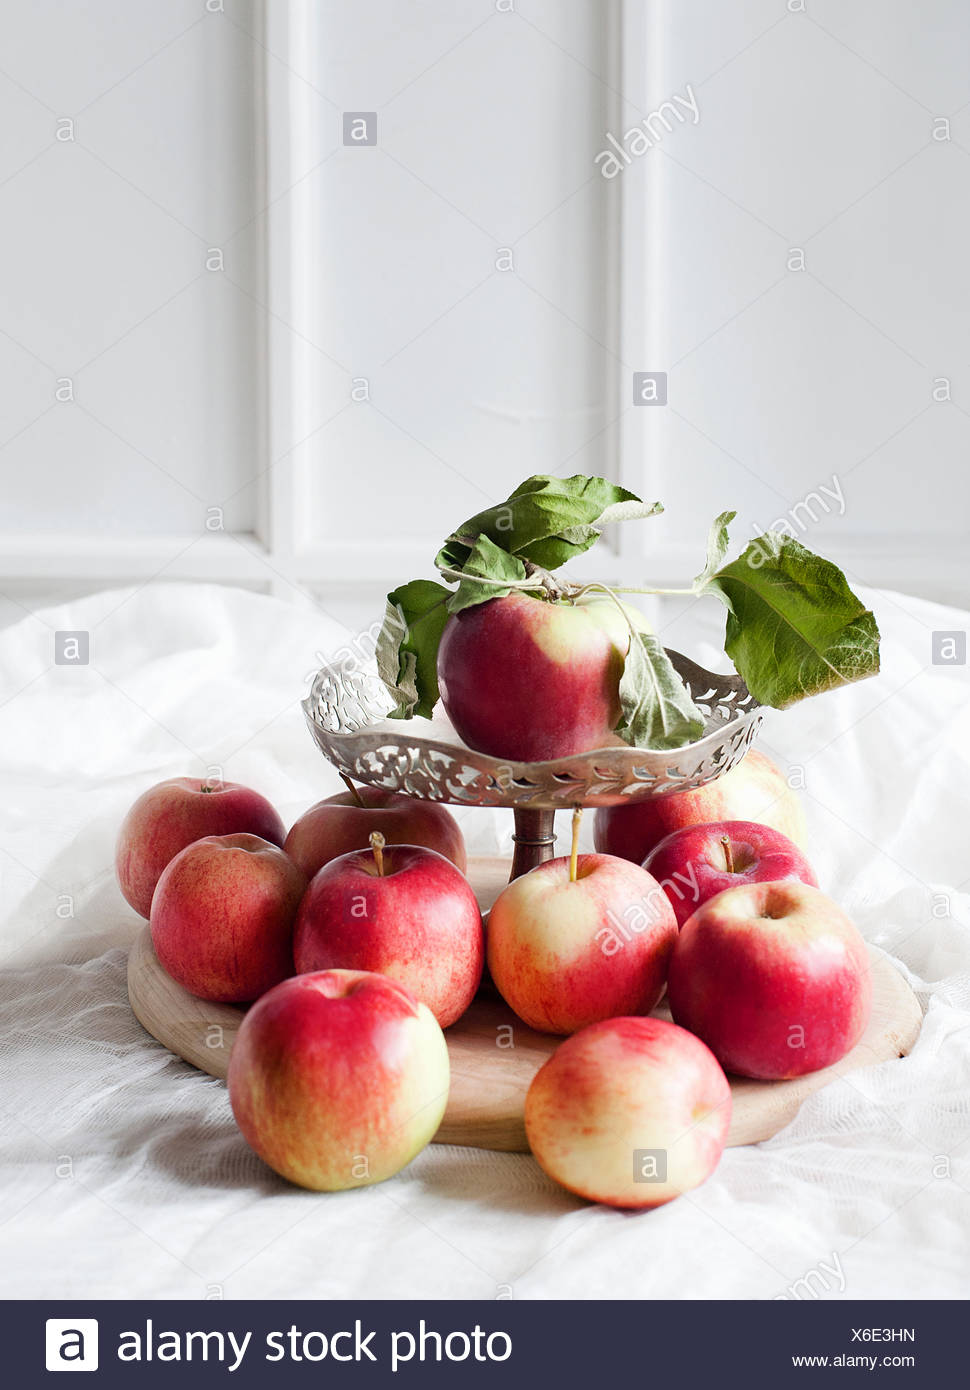 Composition of apples - Stock Image